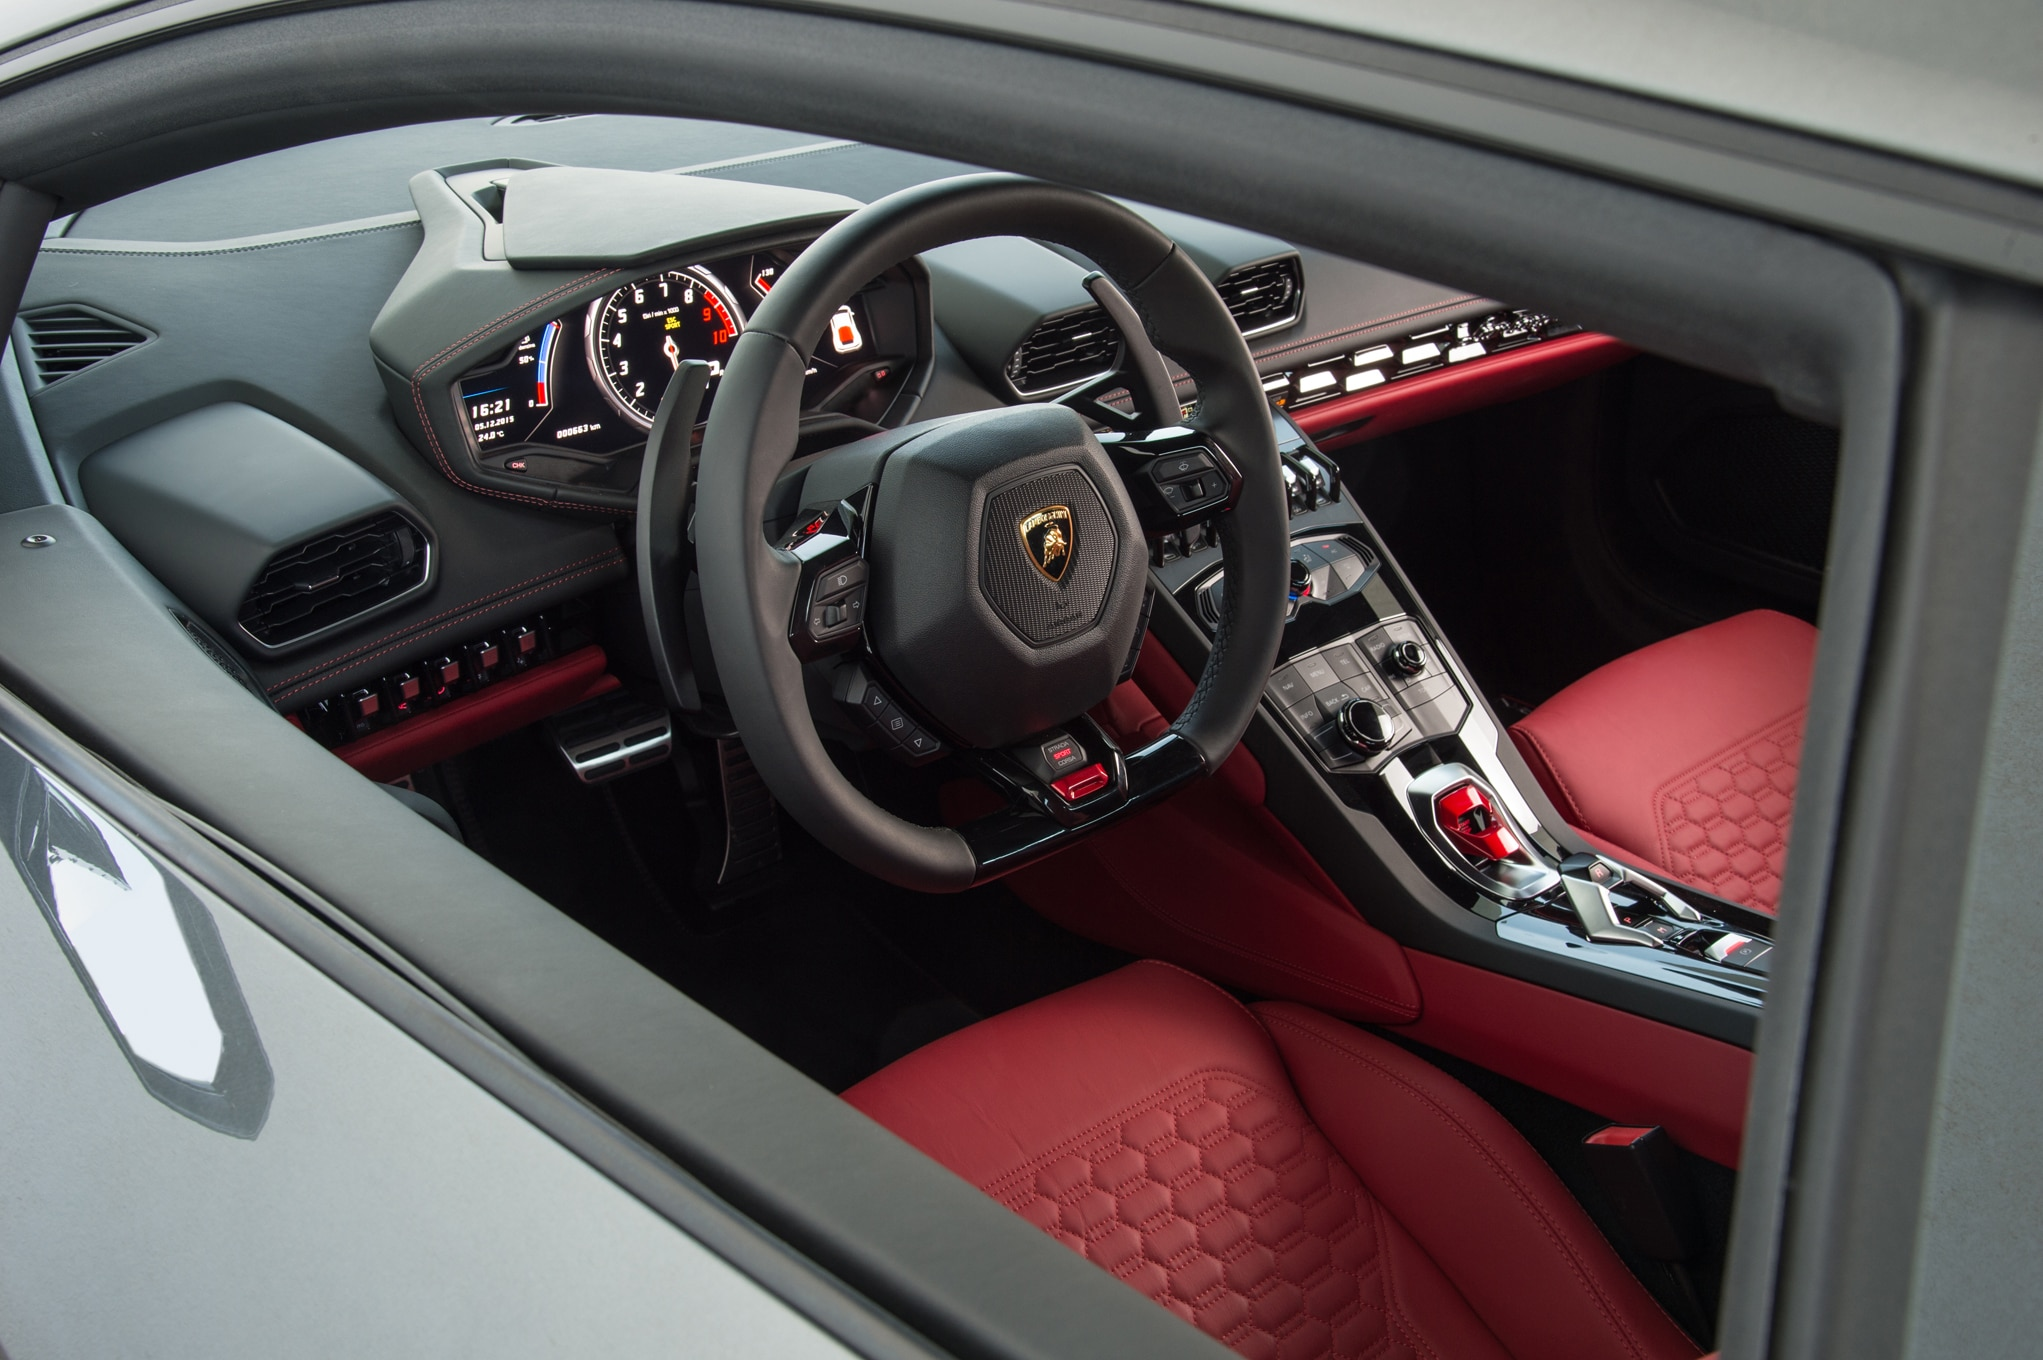 lamborghini huracan interior 2015 2015 lamborghini huracan interior from drivers side photo 51. Black Bedroom Furniture Sets. Home Design Ideas